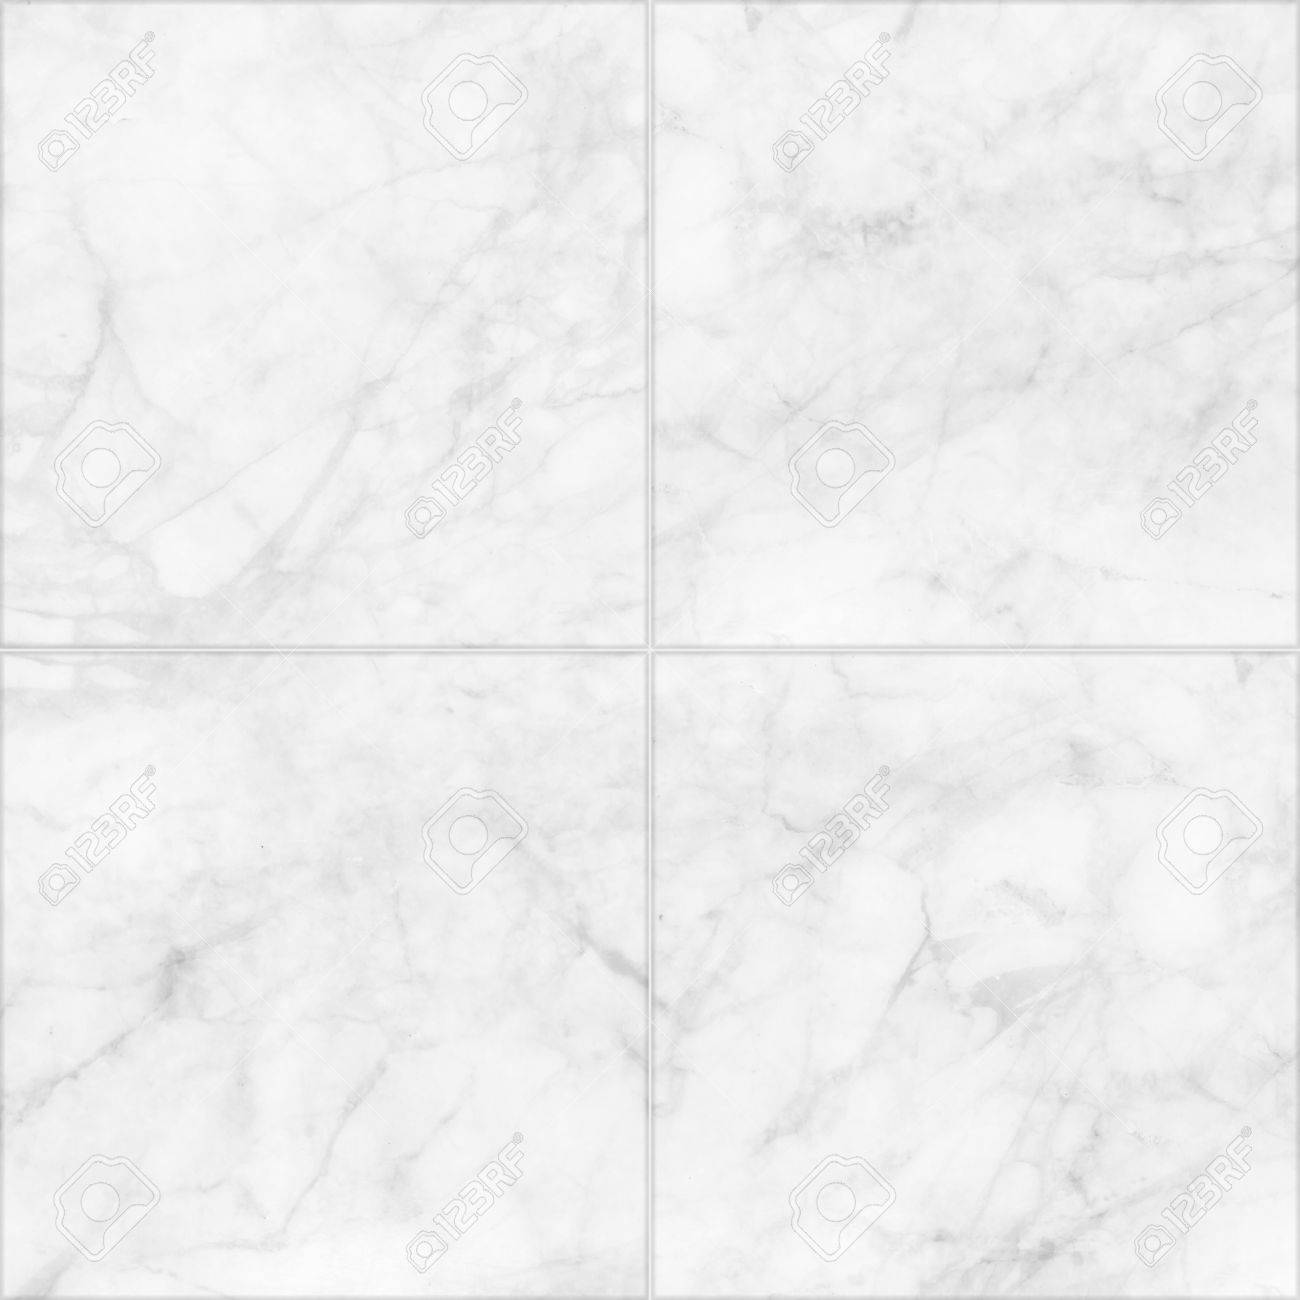 White Marble Tiles Seamless Flooring Texture Detailed Structure Stock Photo Picture And Royalty Free Image Image 43223761